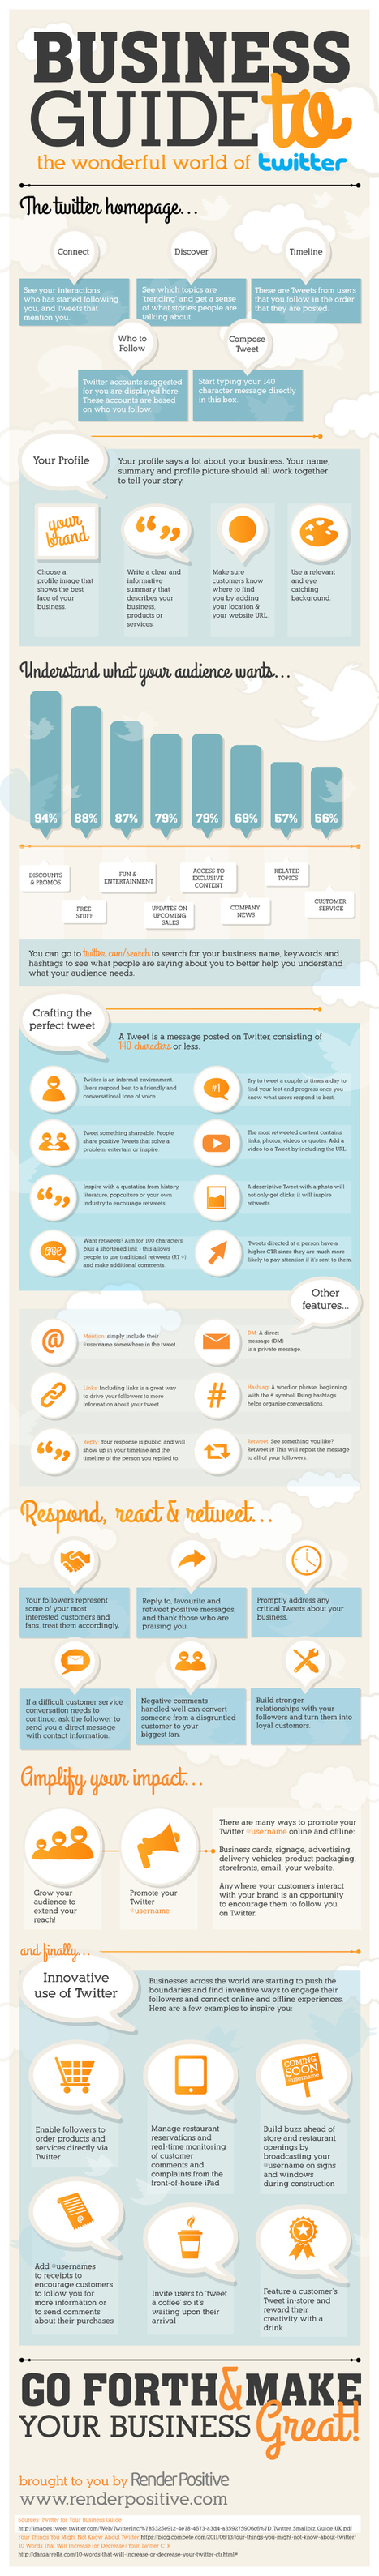 Twitter Guide for New Businesses [infographic] | SM | Scoop.it